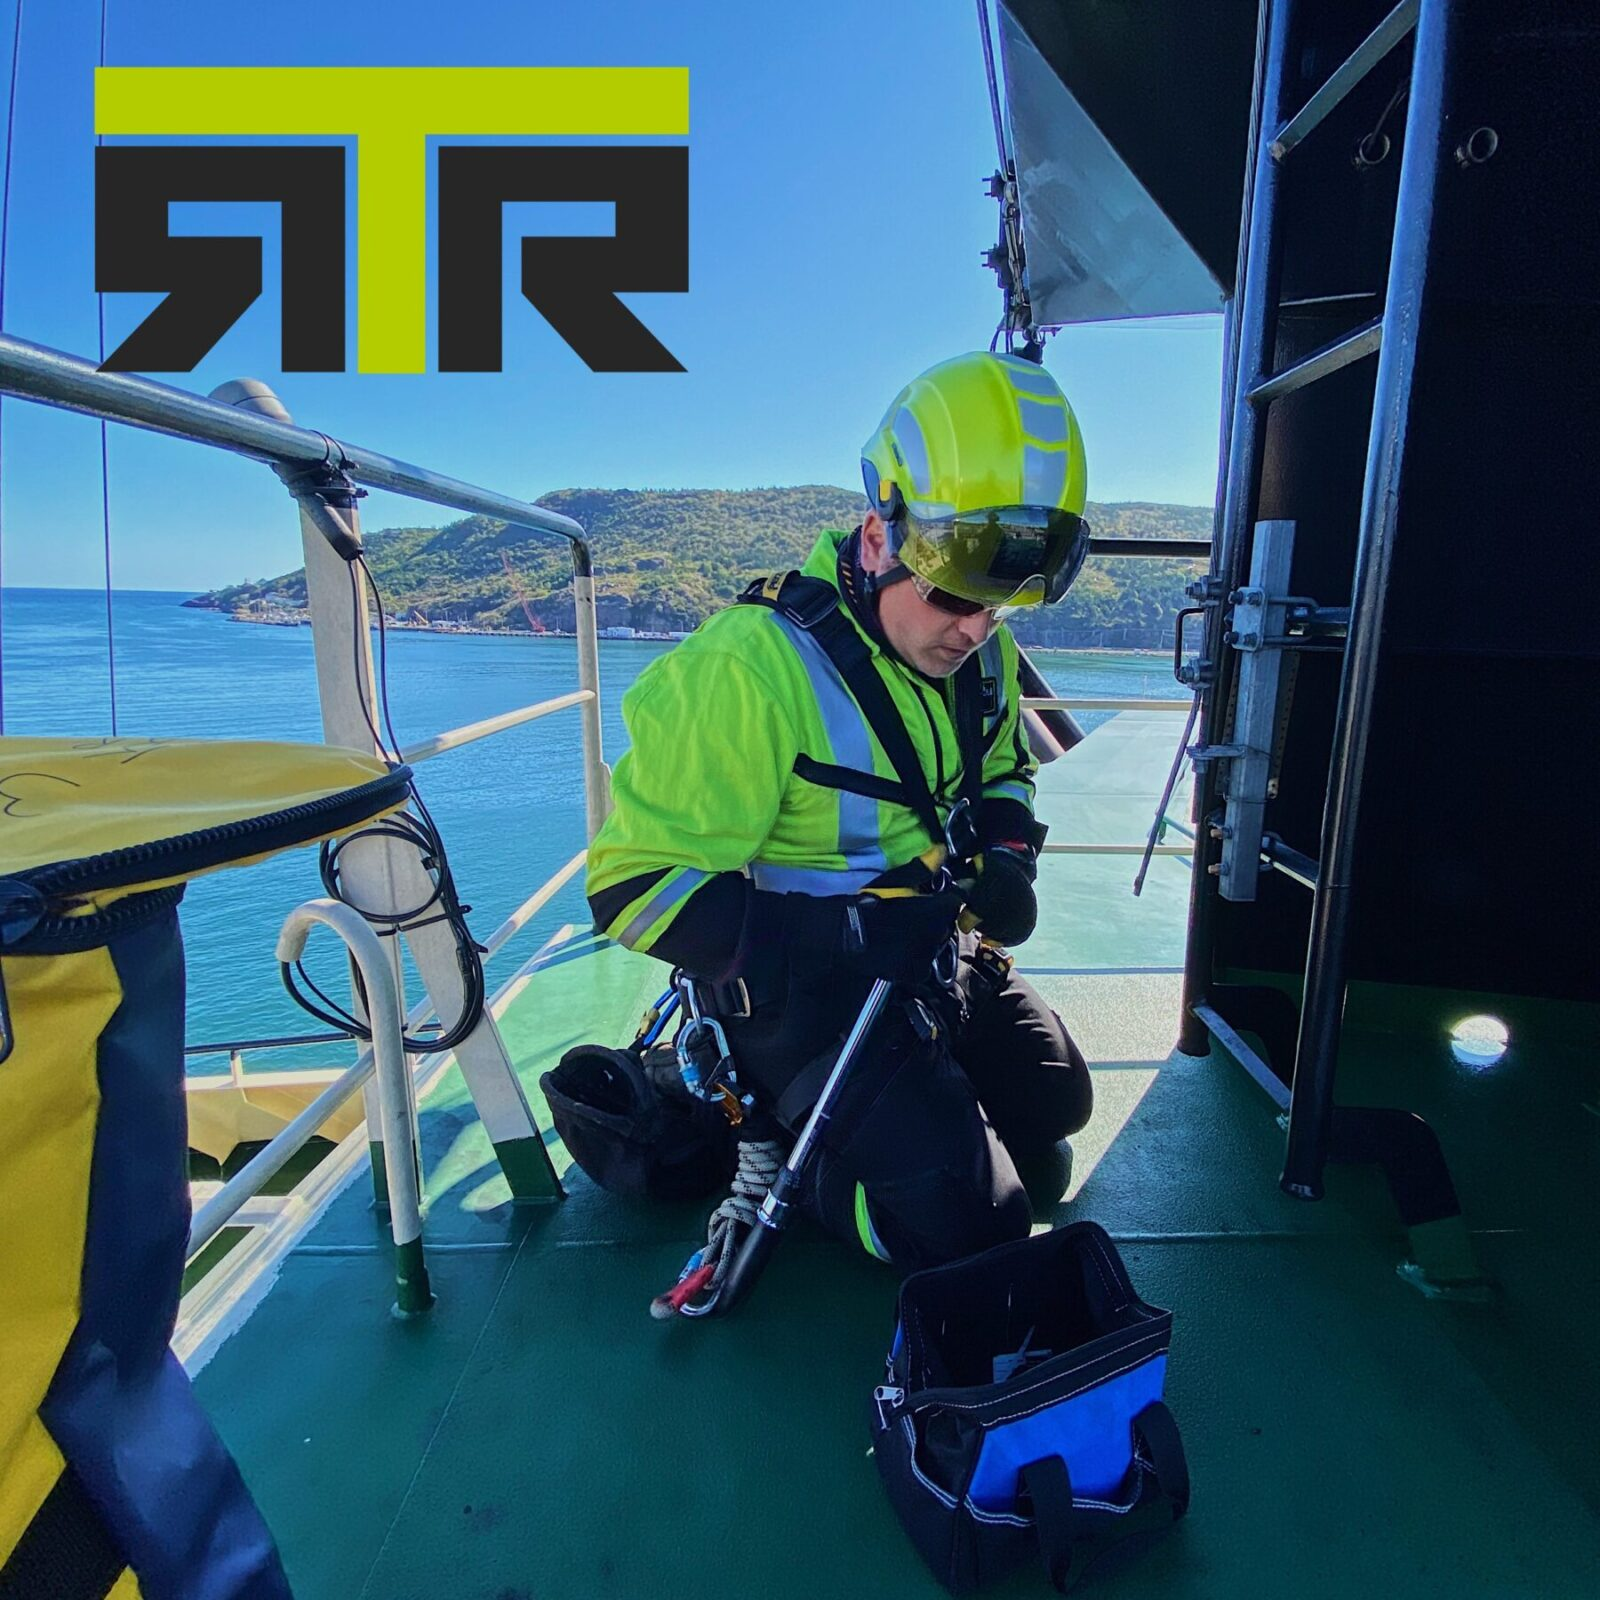 Petzl Technical Partner - Technical Rope & Rescue